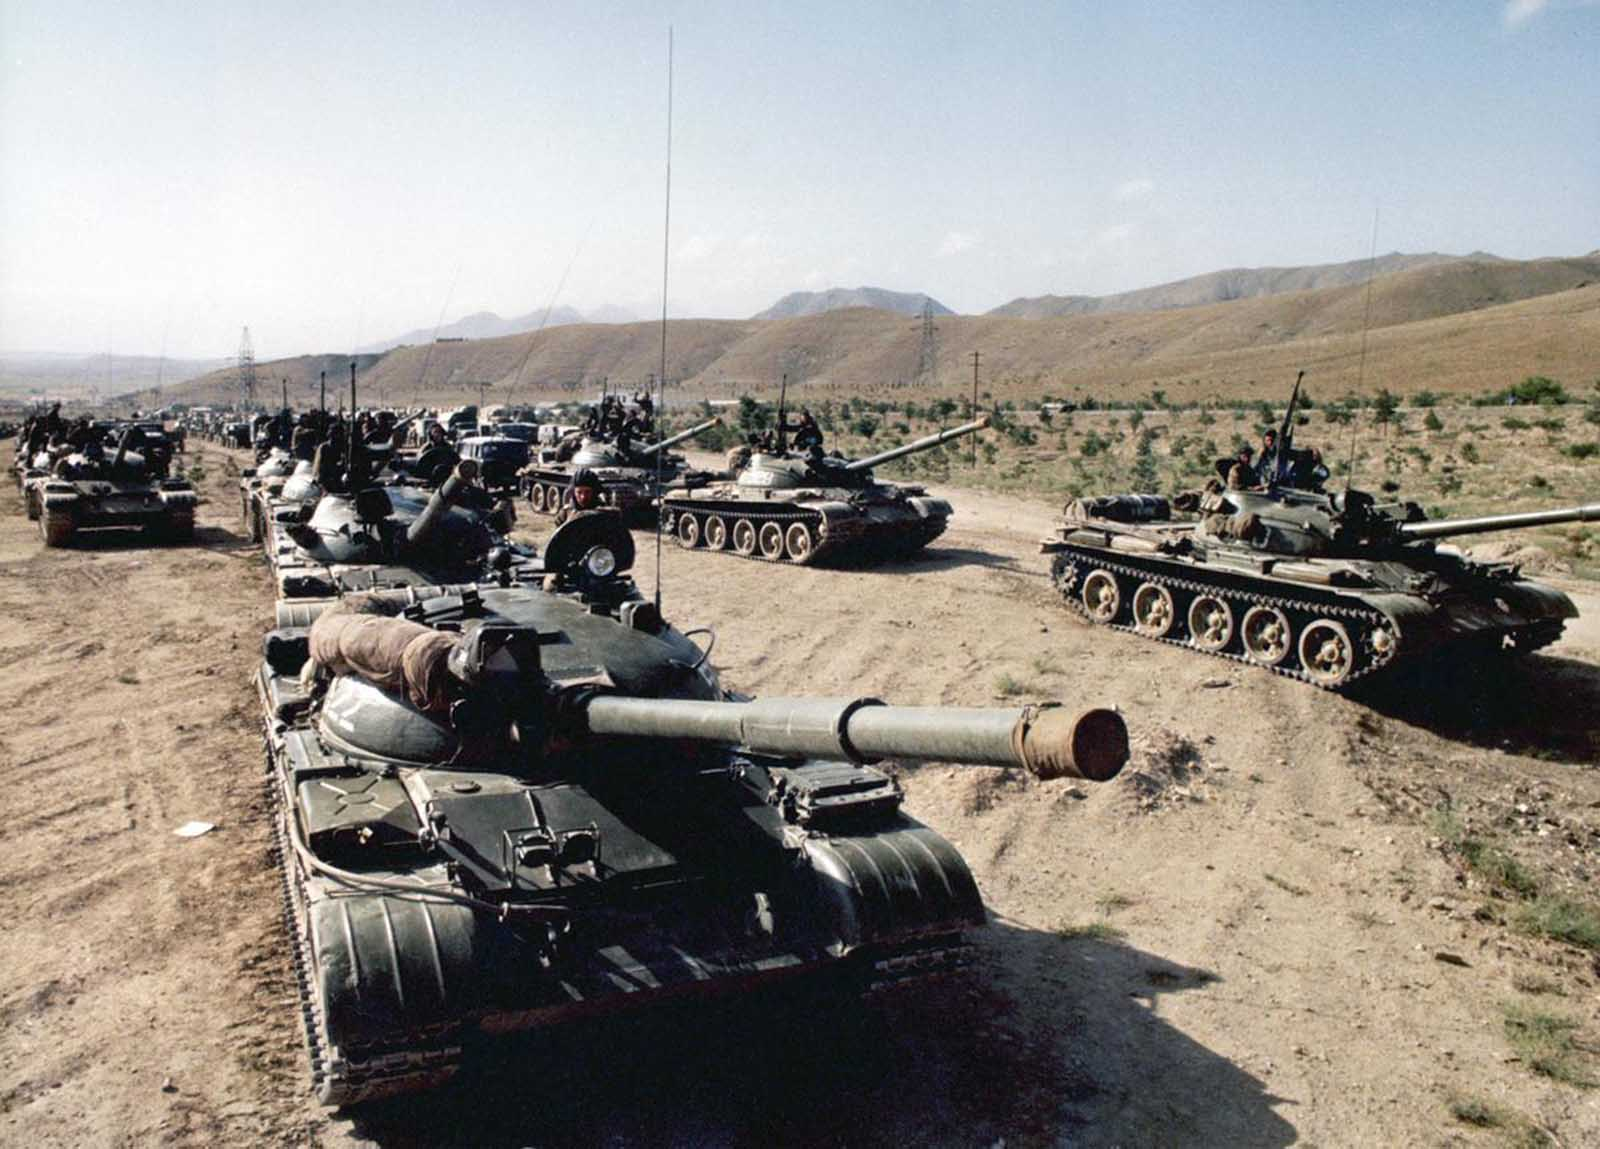 Soviet troops on the move in Afghanistan, mid-1980s.